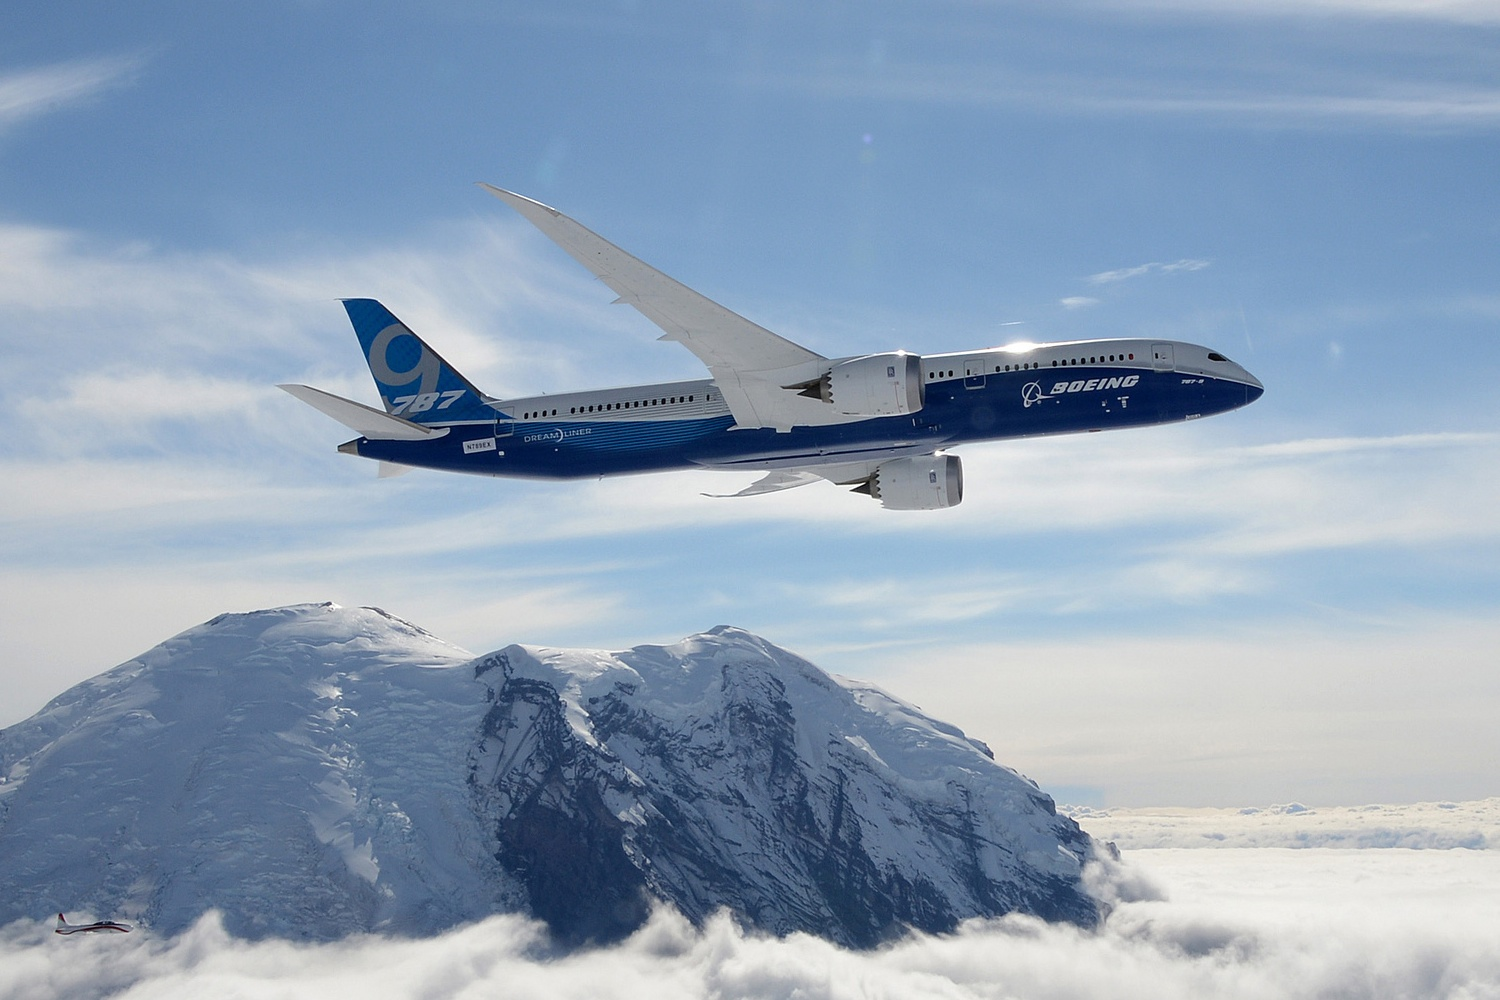 The latest generation of airliners, such as the Boeing 787 (pictured above) and the Airbus A350, rely heavily on automation.